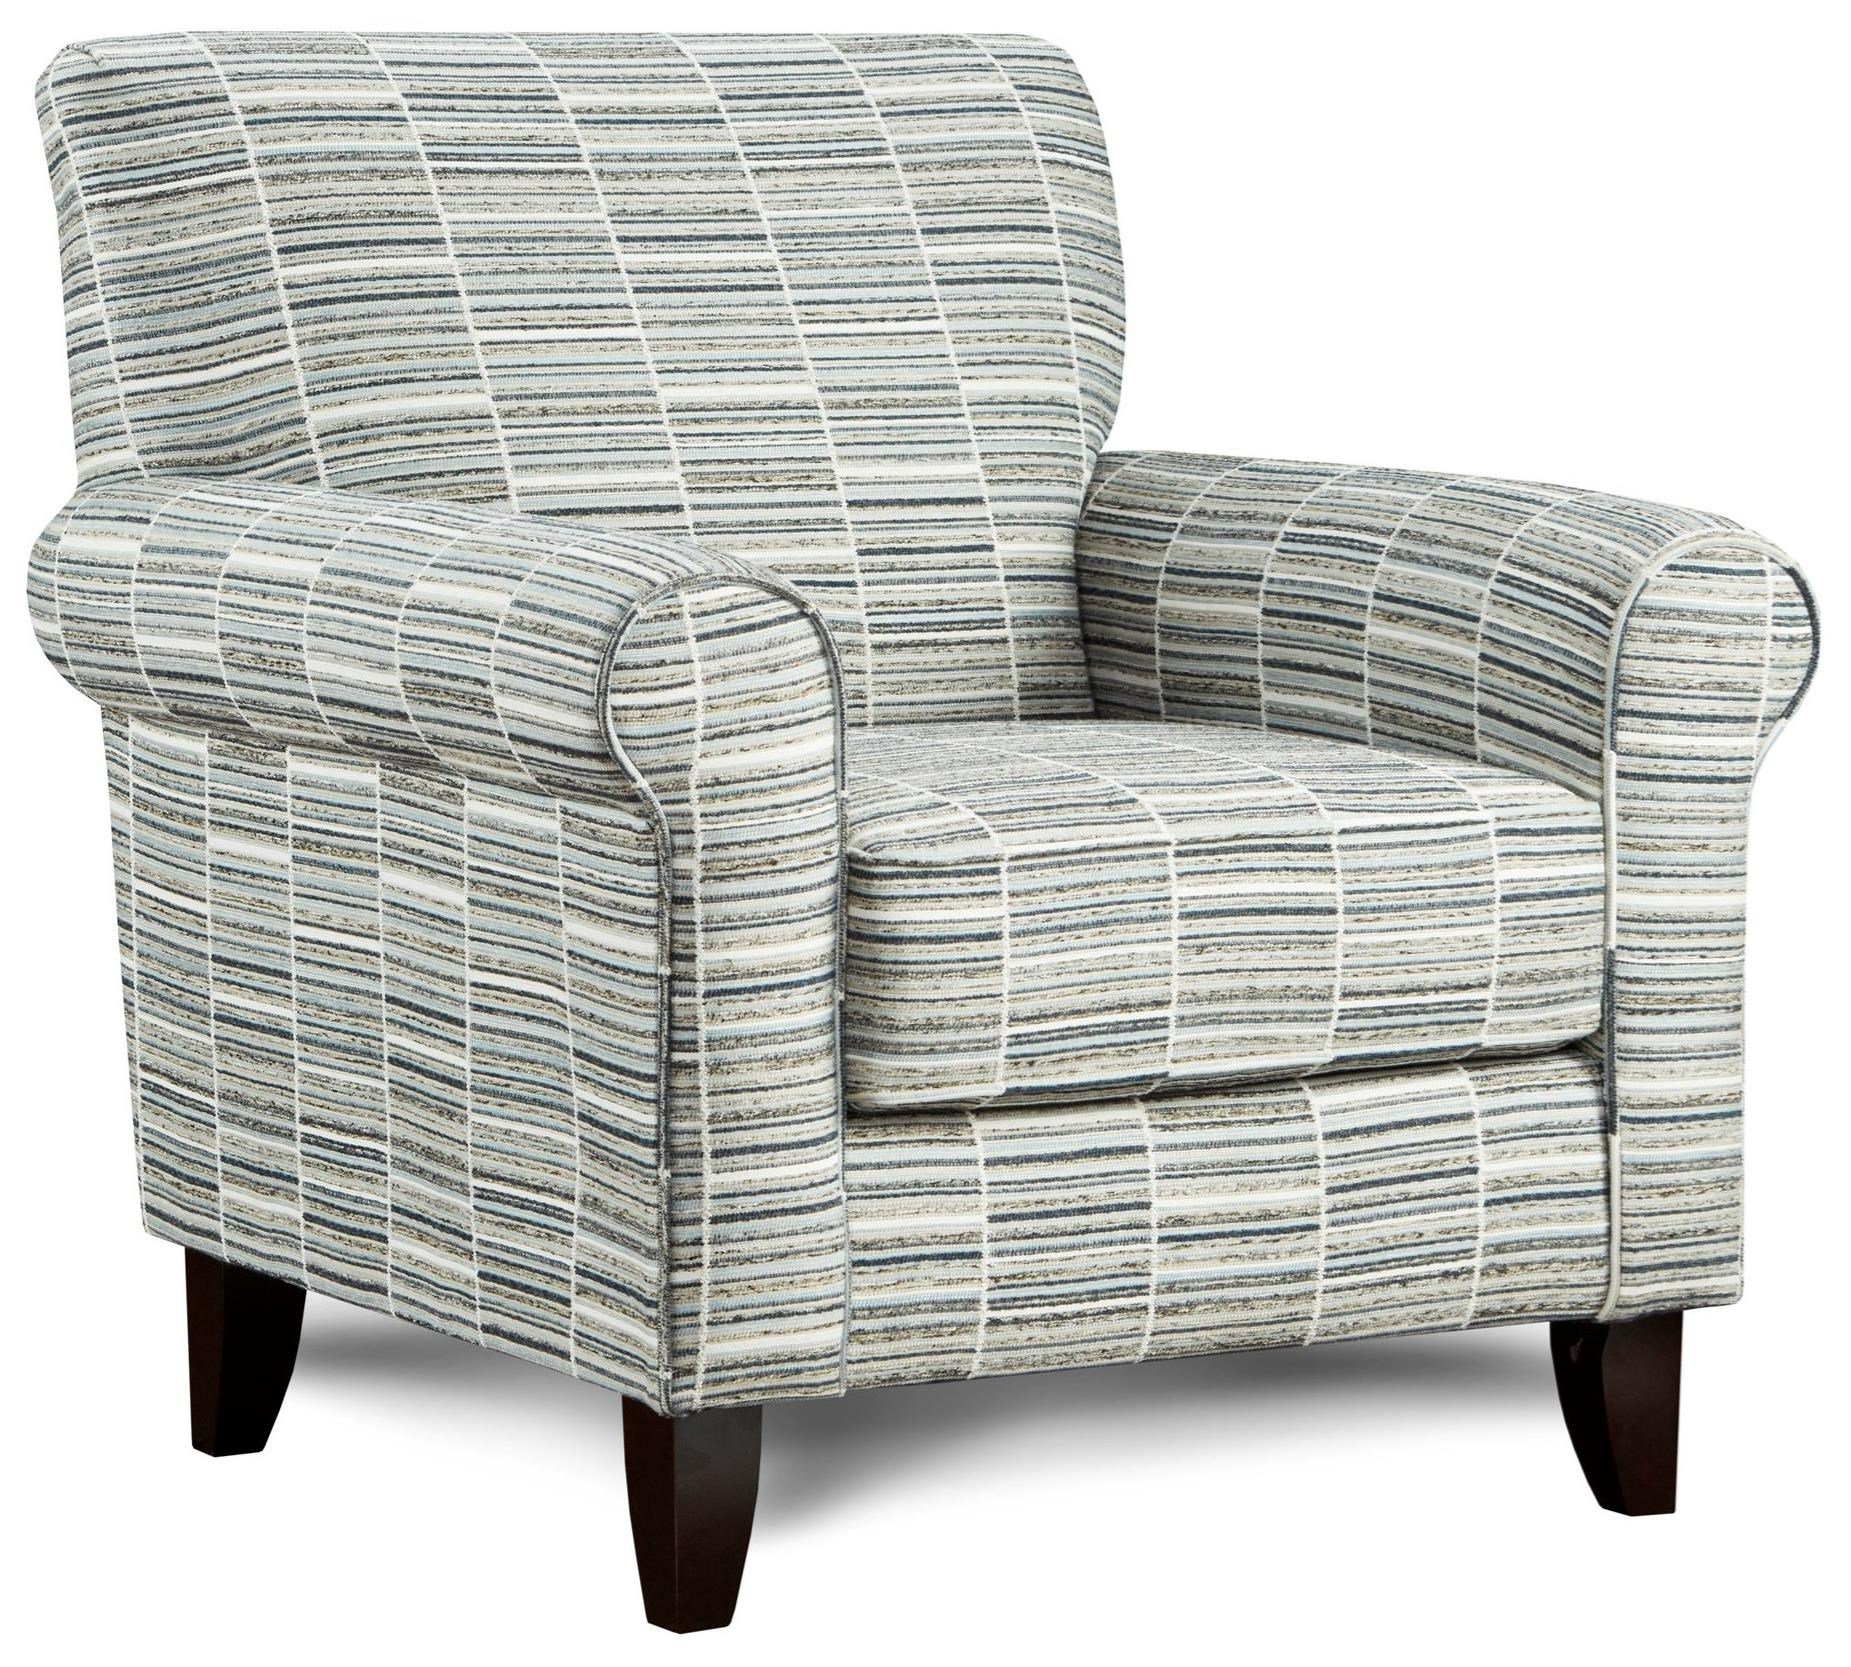 502 Accent Chair by Fusion Furniture at Prime Brothers Furniture